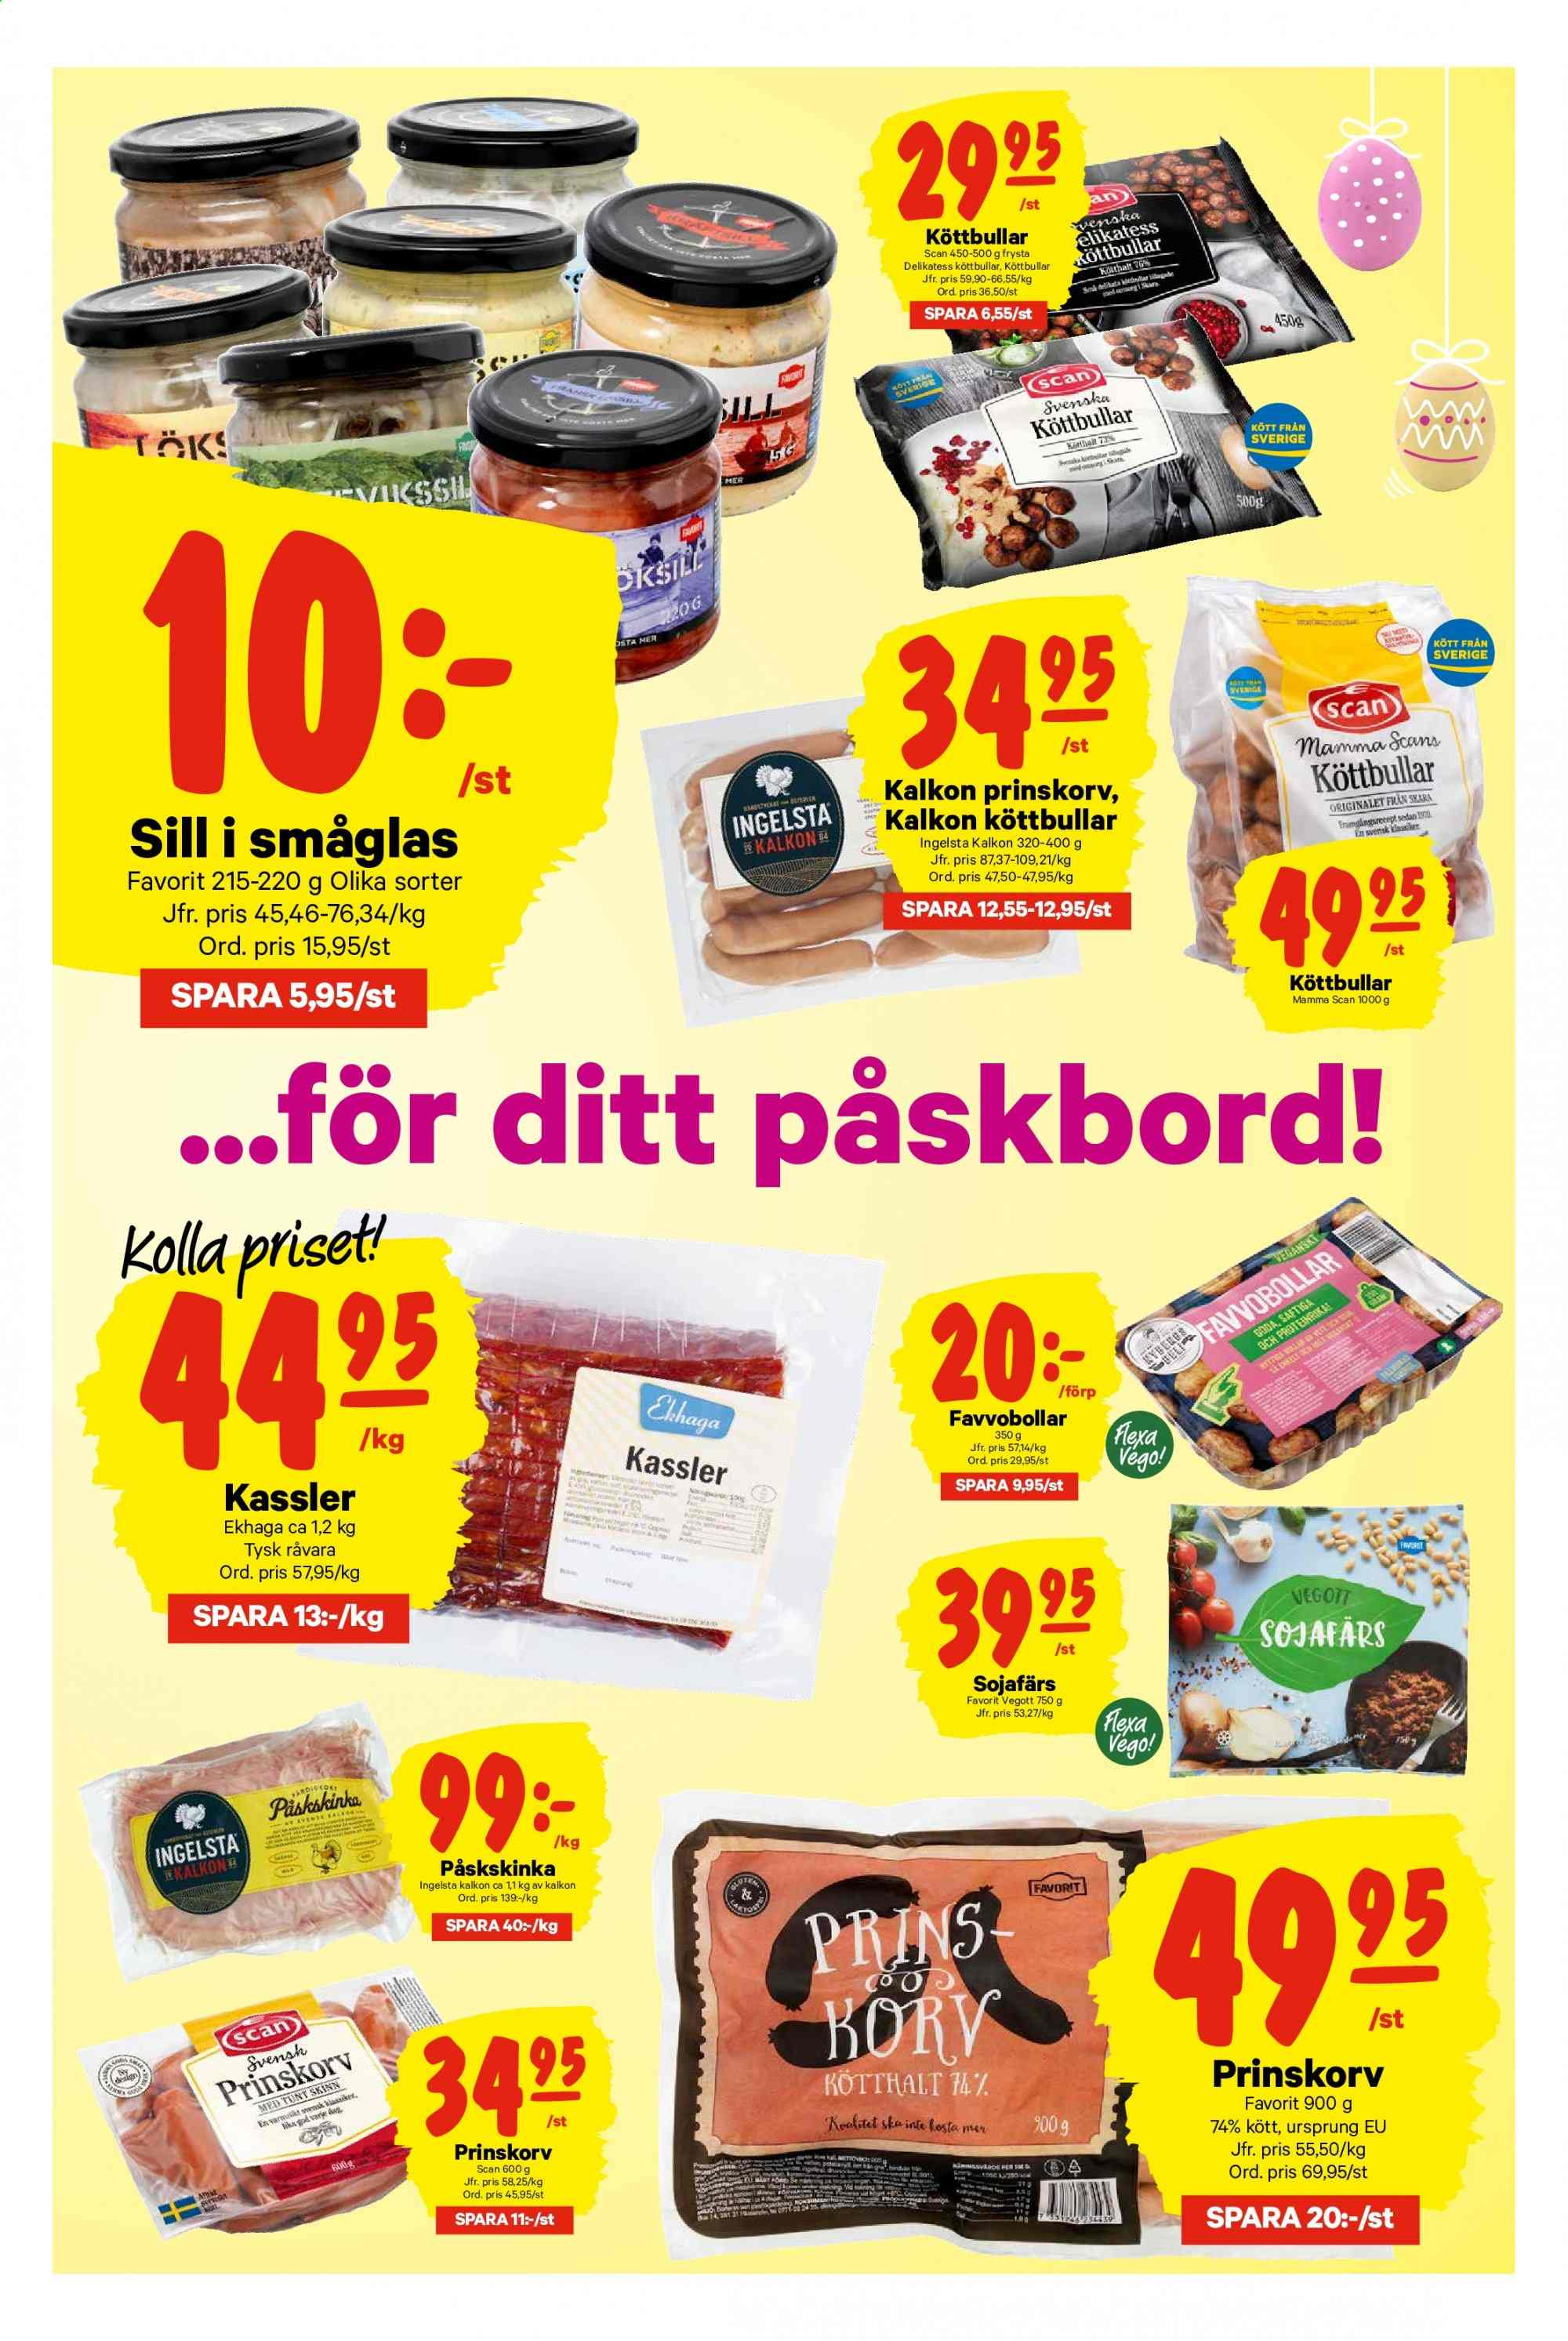 City Gross reklamblad - 15/4 2019 - 22/4 2019. Sida 3.